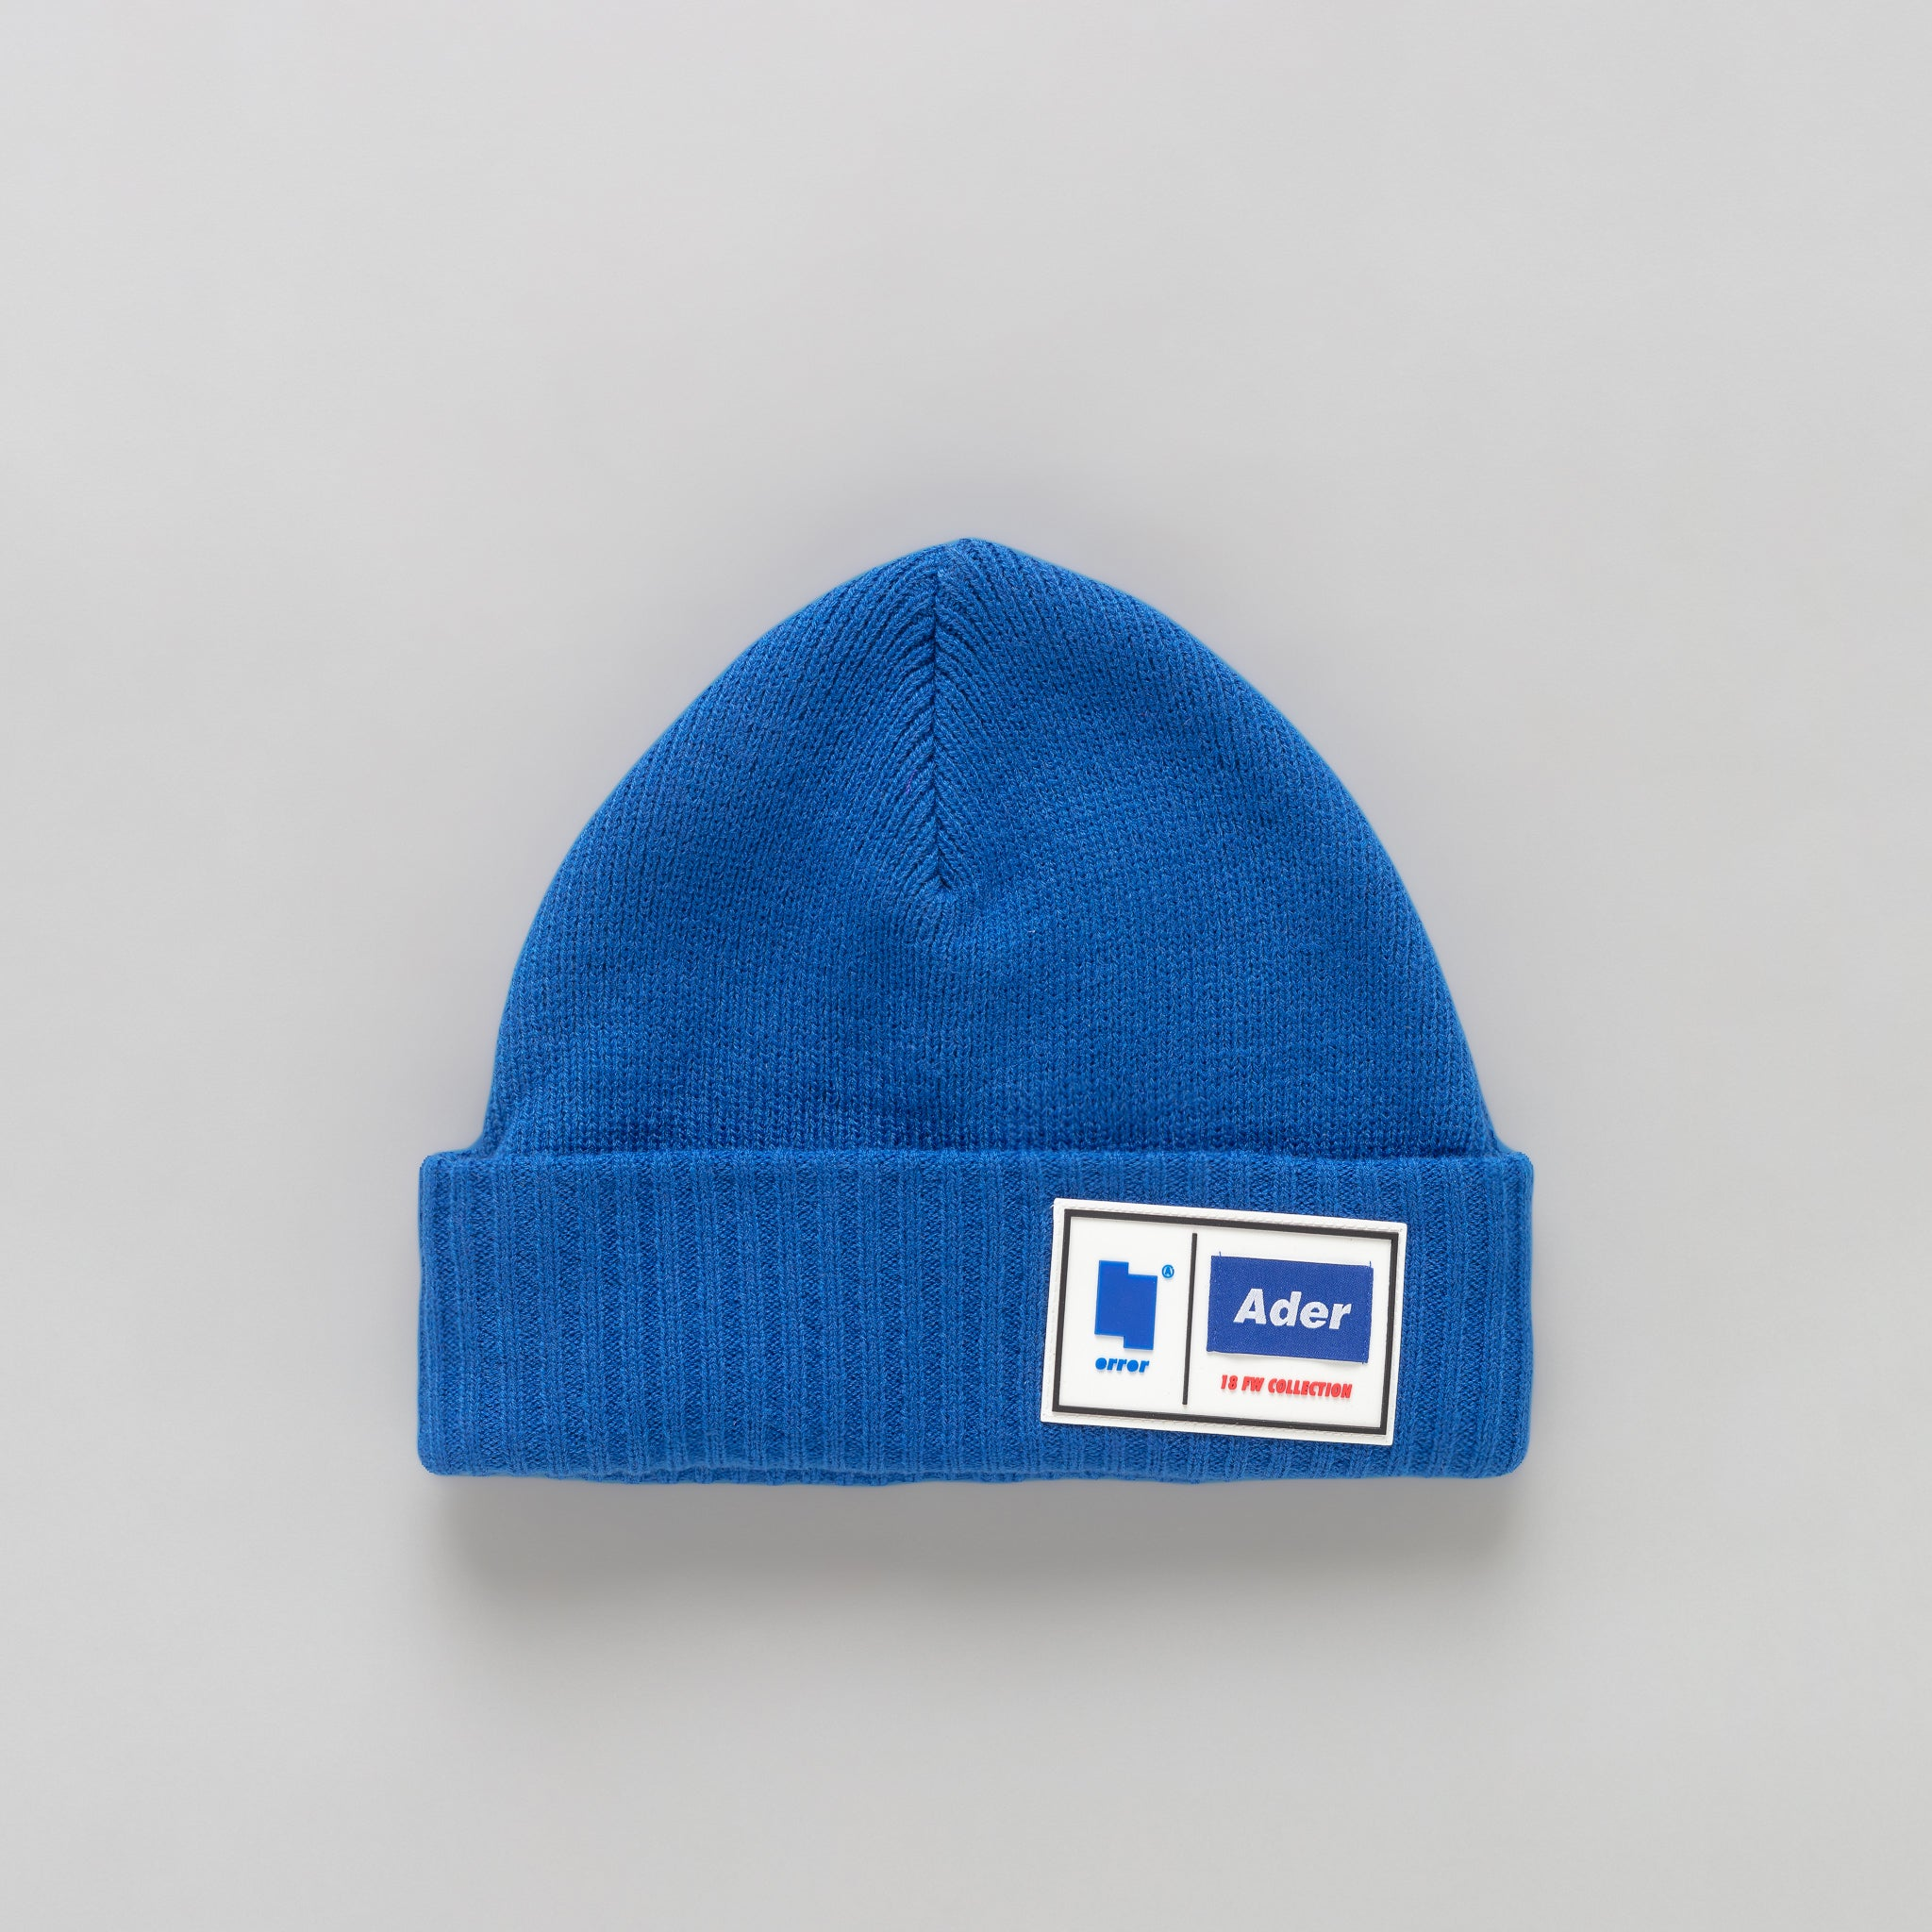 Tetris Label Beanie in Blue